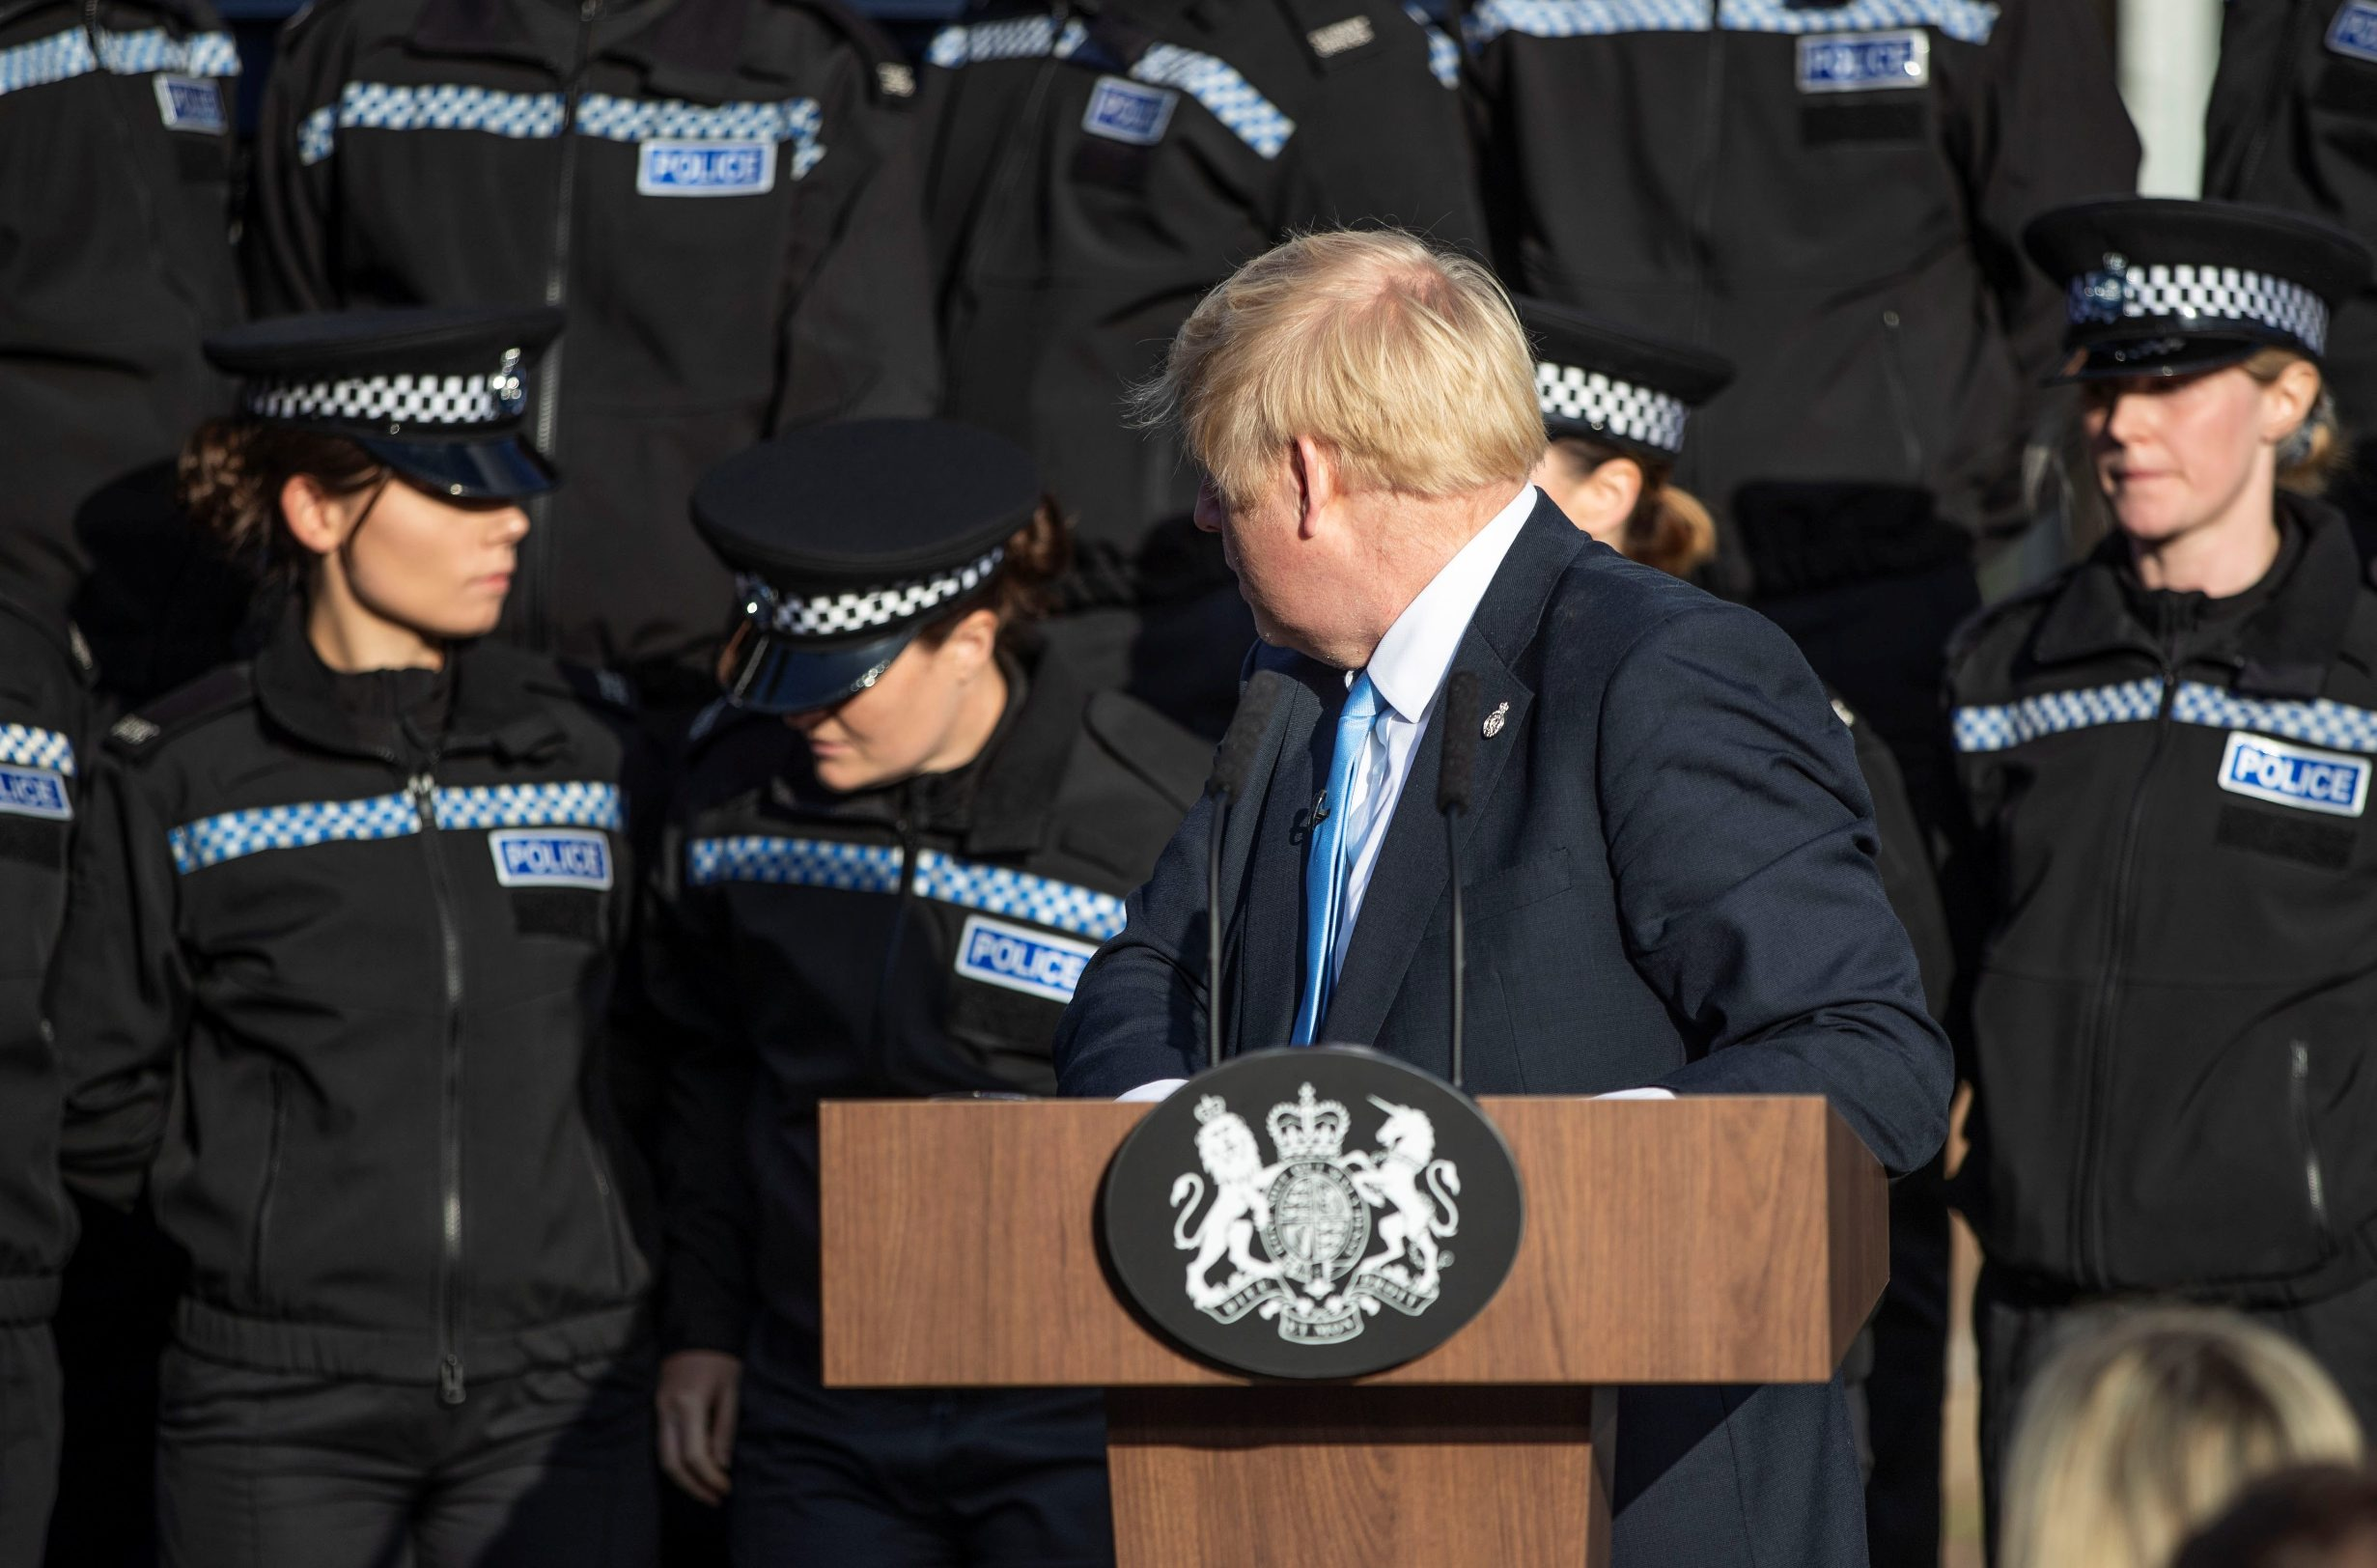 Britain's Prime Minister Boris Johnson reacts after student officer needed to sit down as he made a speech during a visit to West Yorkshire, Britain September 5, 2019. Danny Lawson/PA Wire/Pool via REUTERS